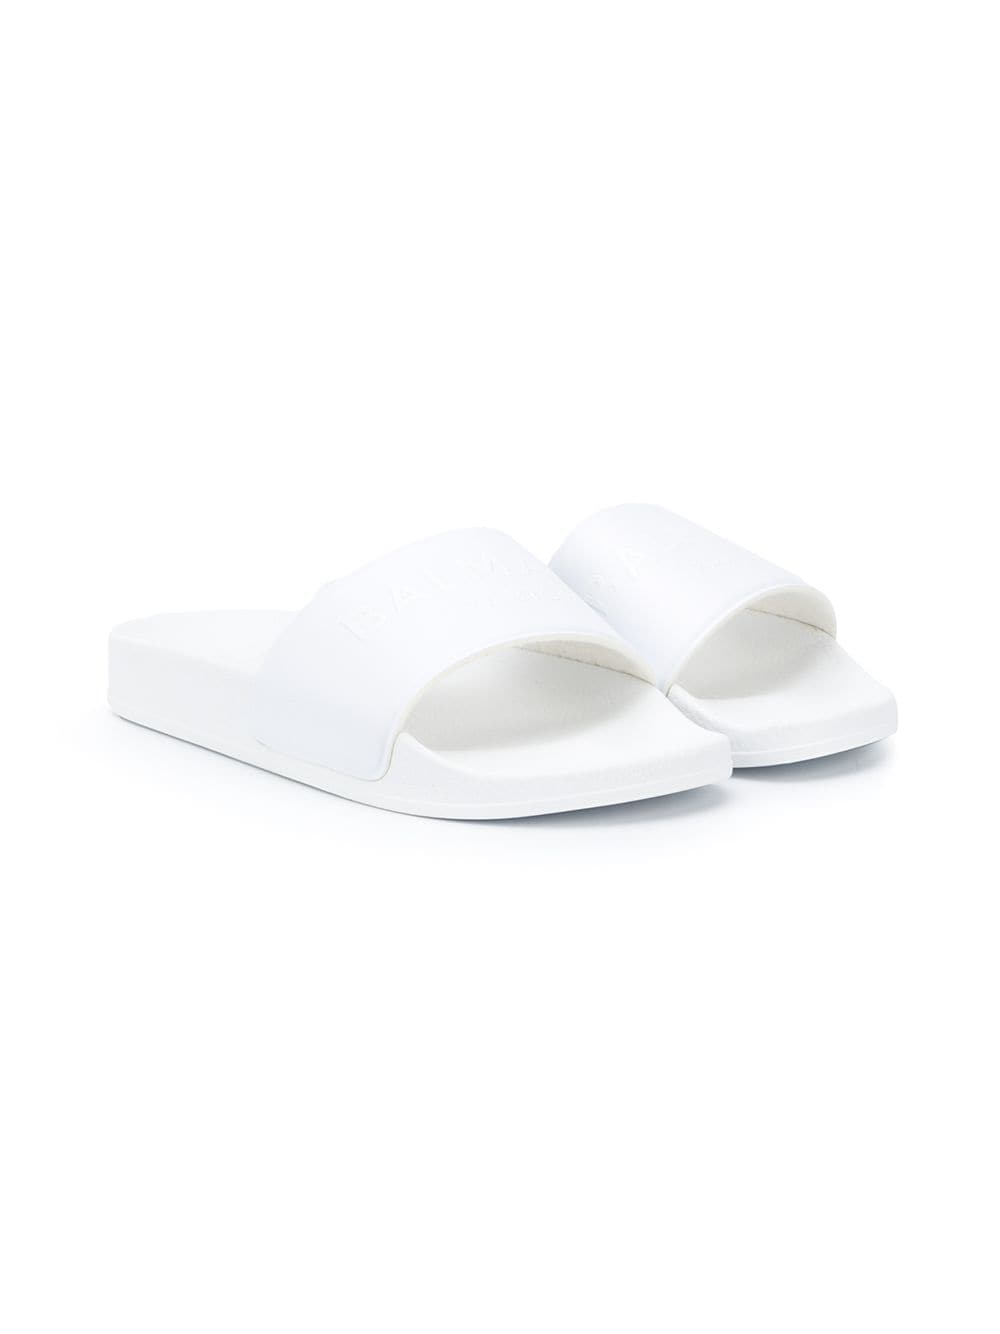 BALMAIN KIDS logo embossed pool sliders white/white - Maison De Fashion